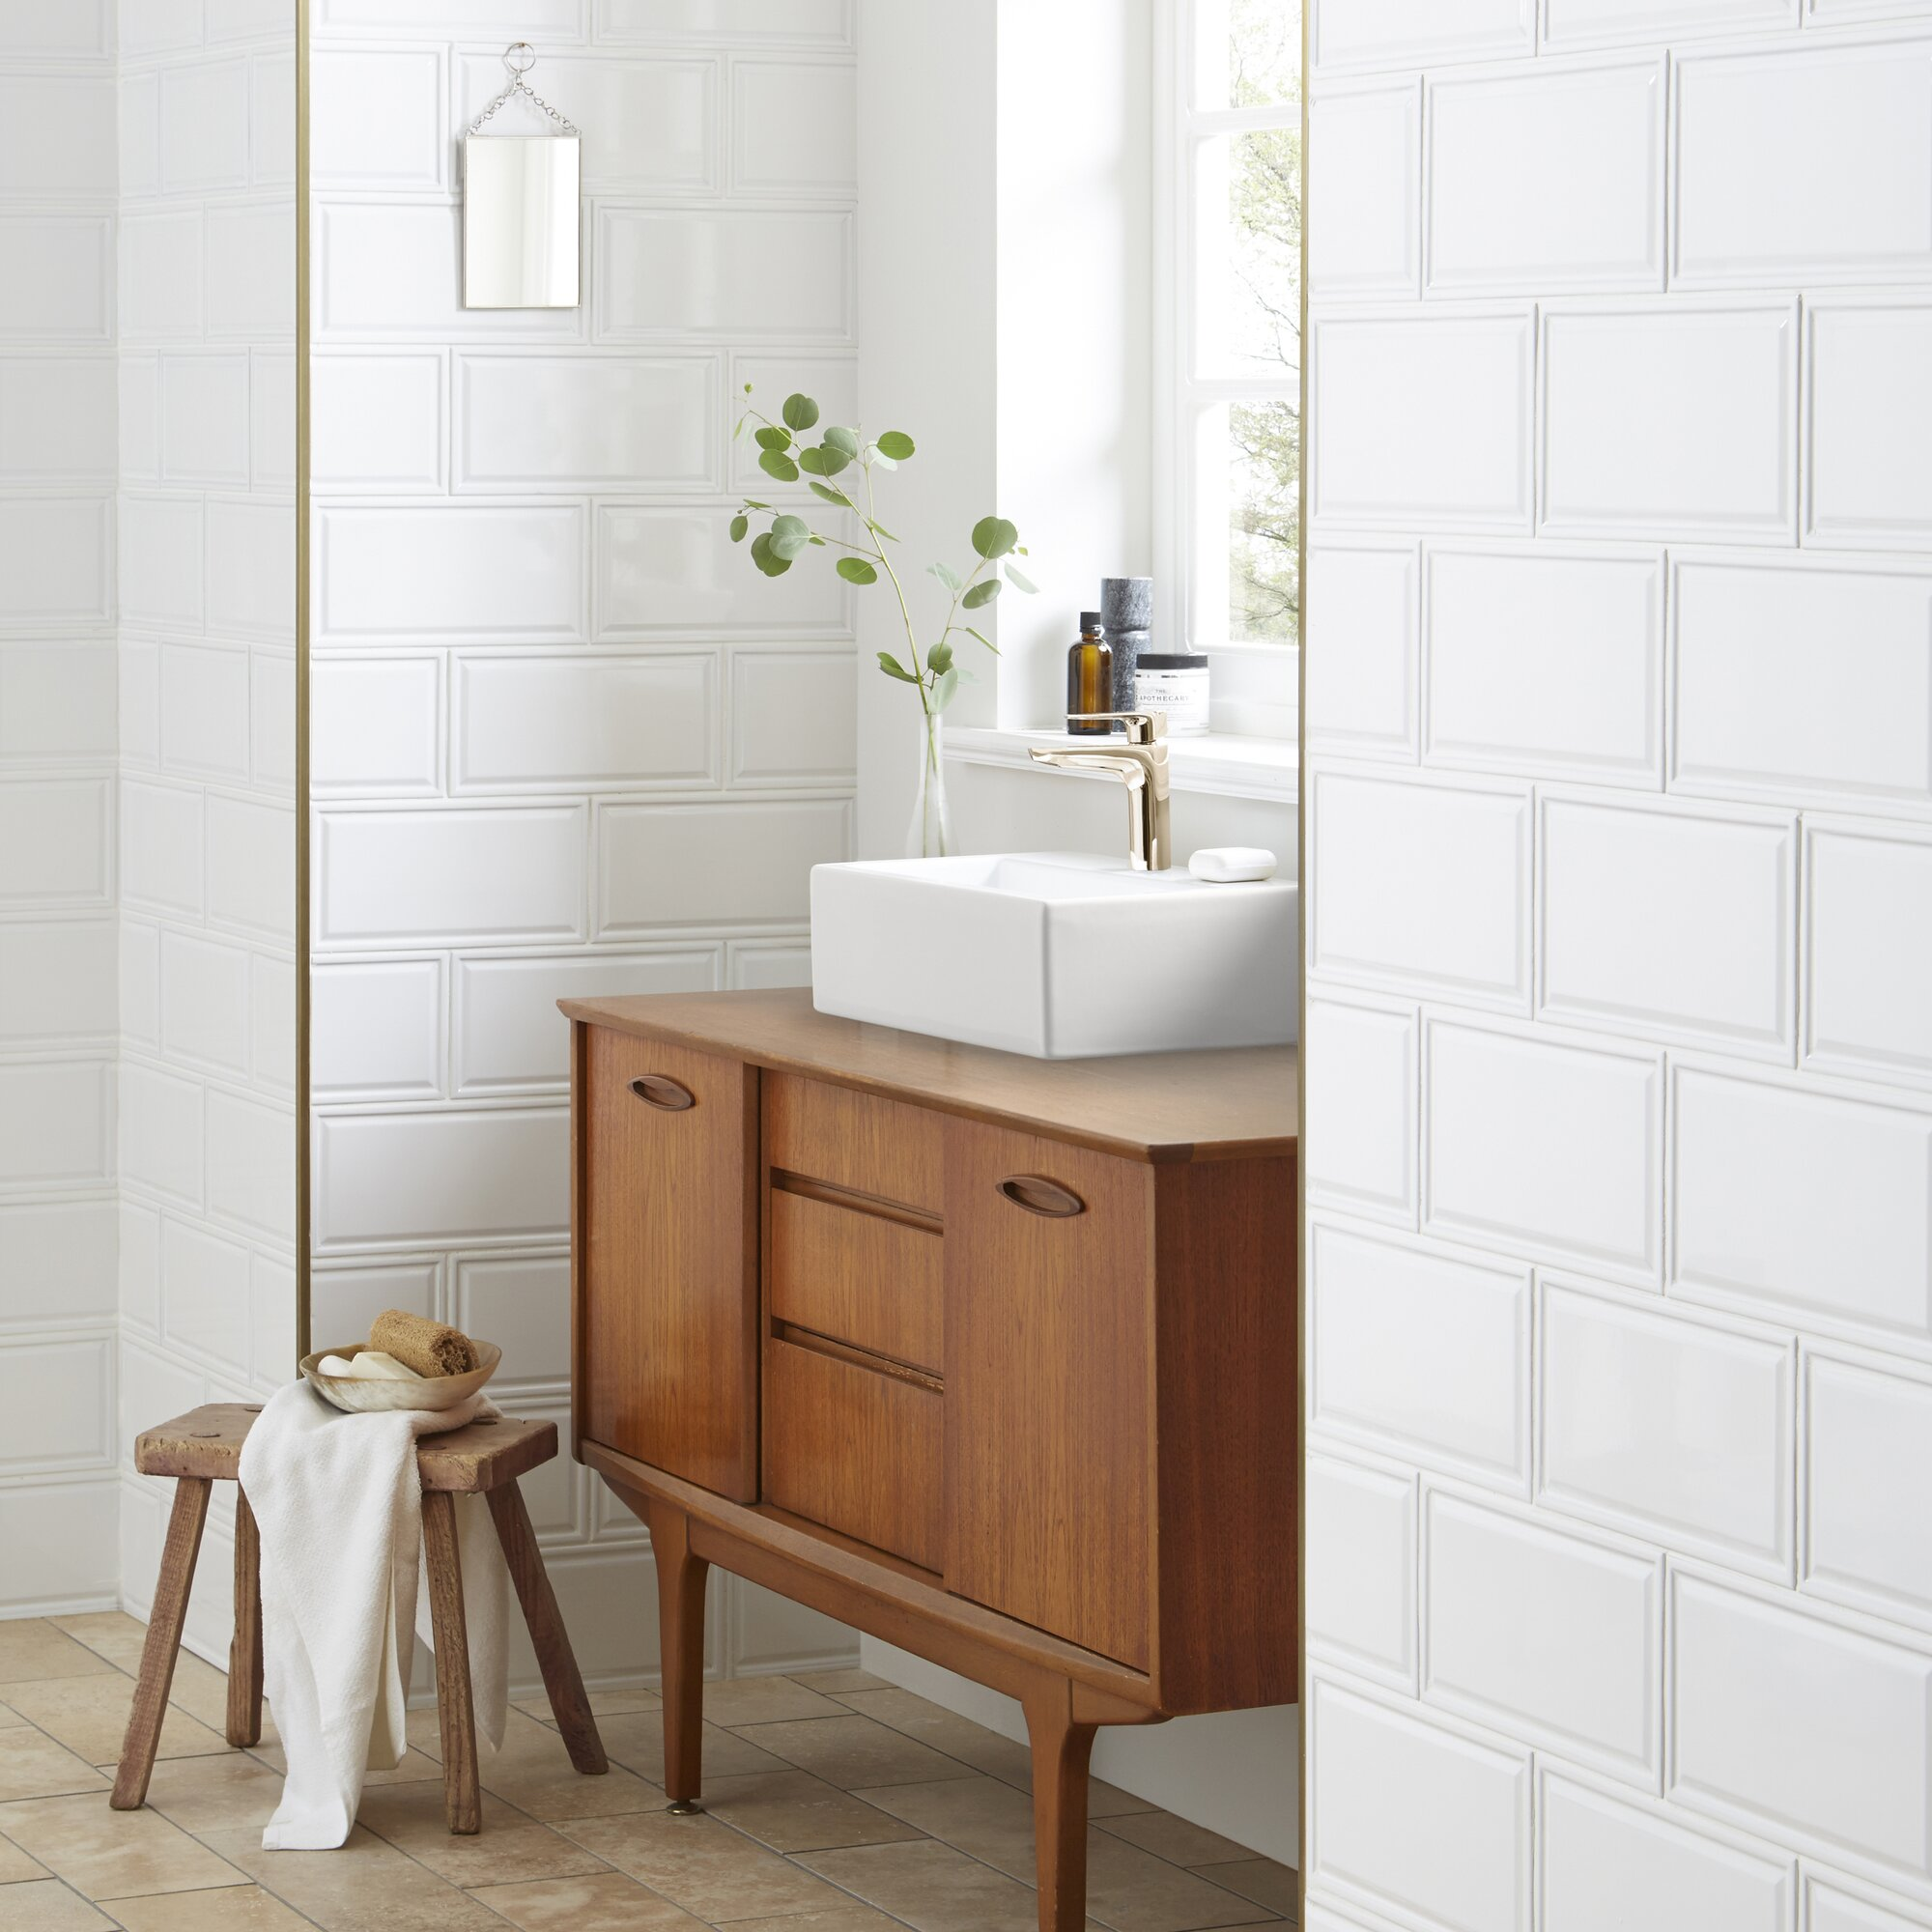 Elitetile linio 6 x 12 ceramic subway tile in white for Bathroom trends reviews